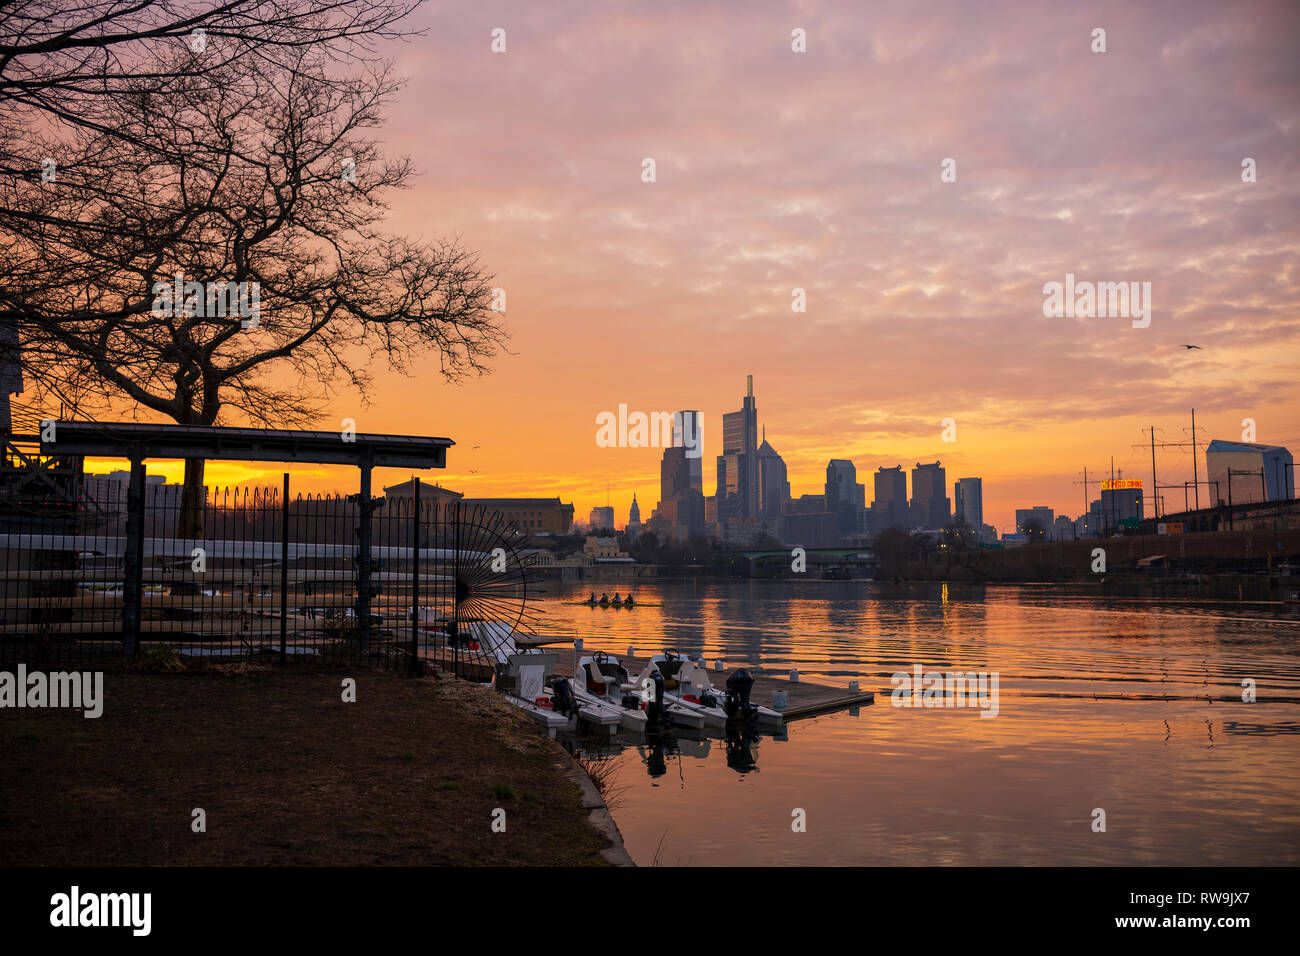 Crew members practice on the Schuylkill River in Philadelphia, Pennsylvania, seen here from Boathouse Row at sunrise. - Stock Image